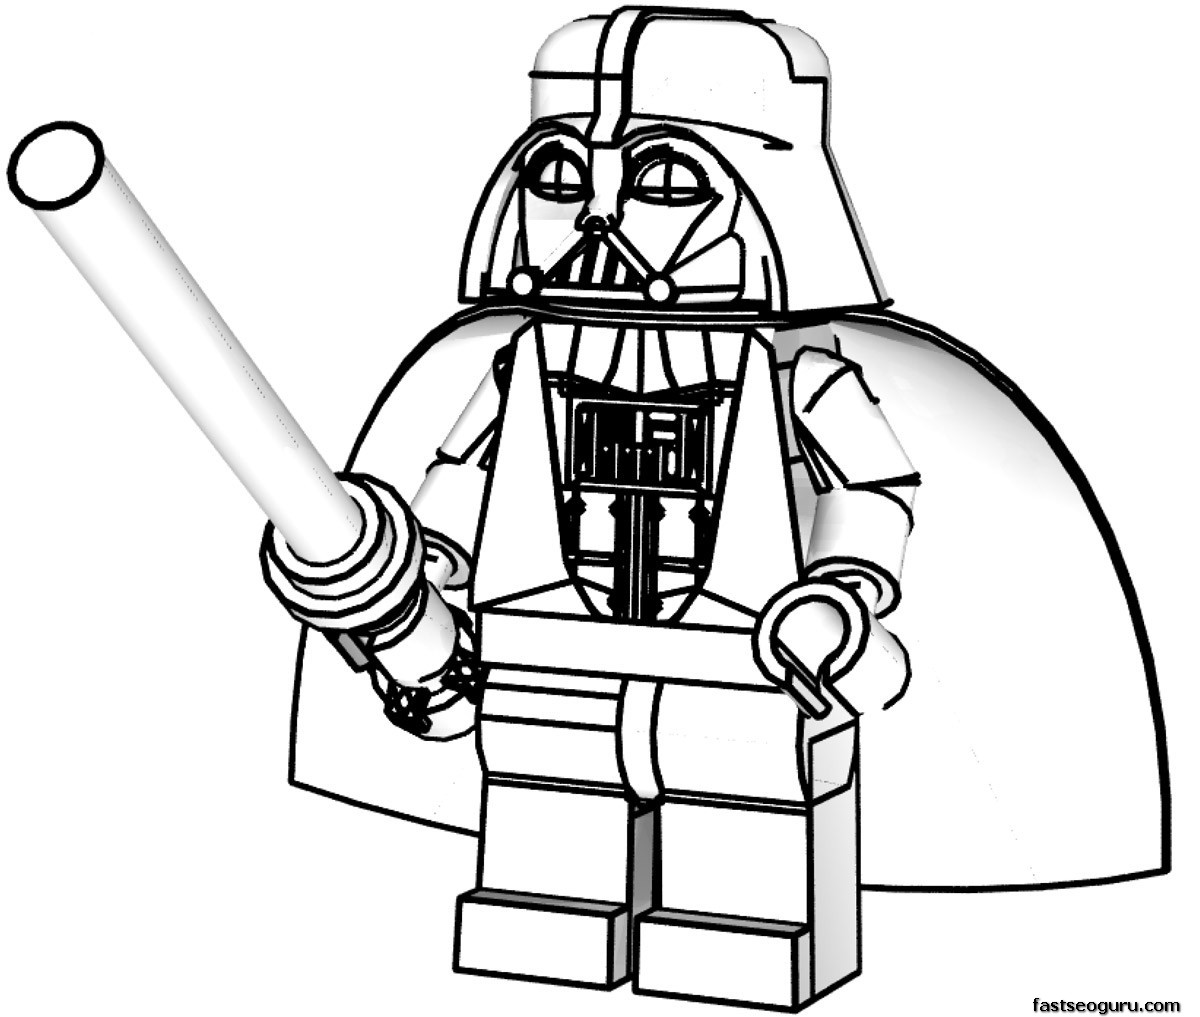 lego colouring in pages lego star wars coloring pages to download and print for free lego colouring in pages